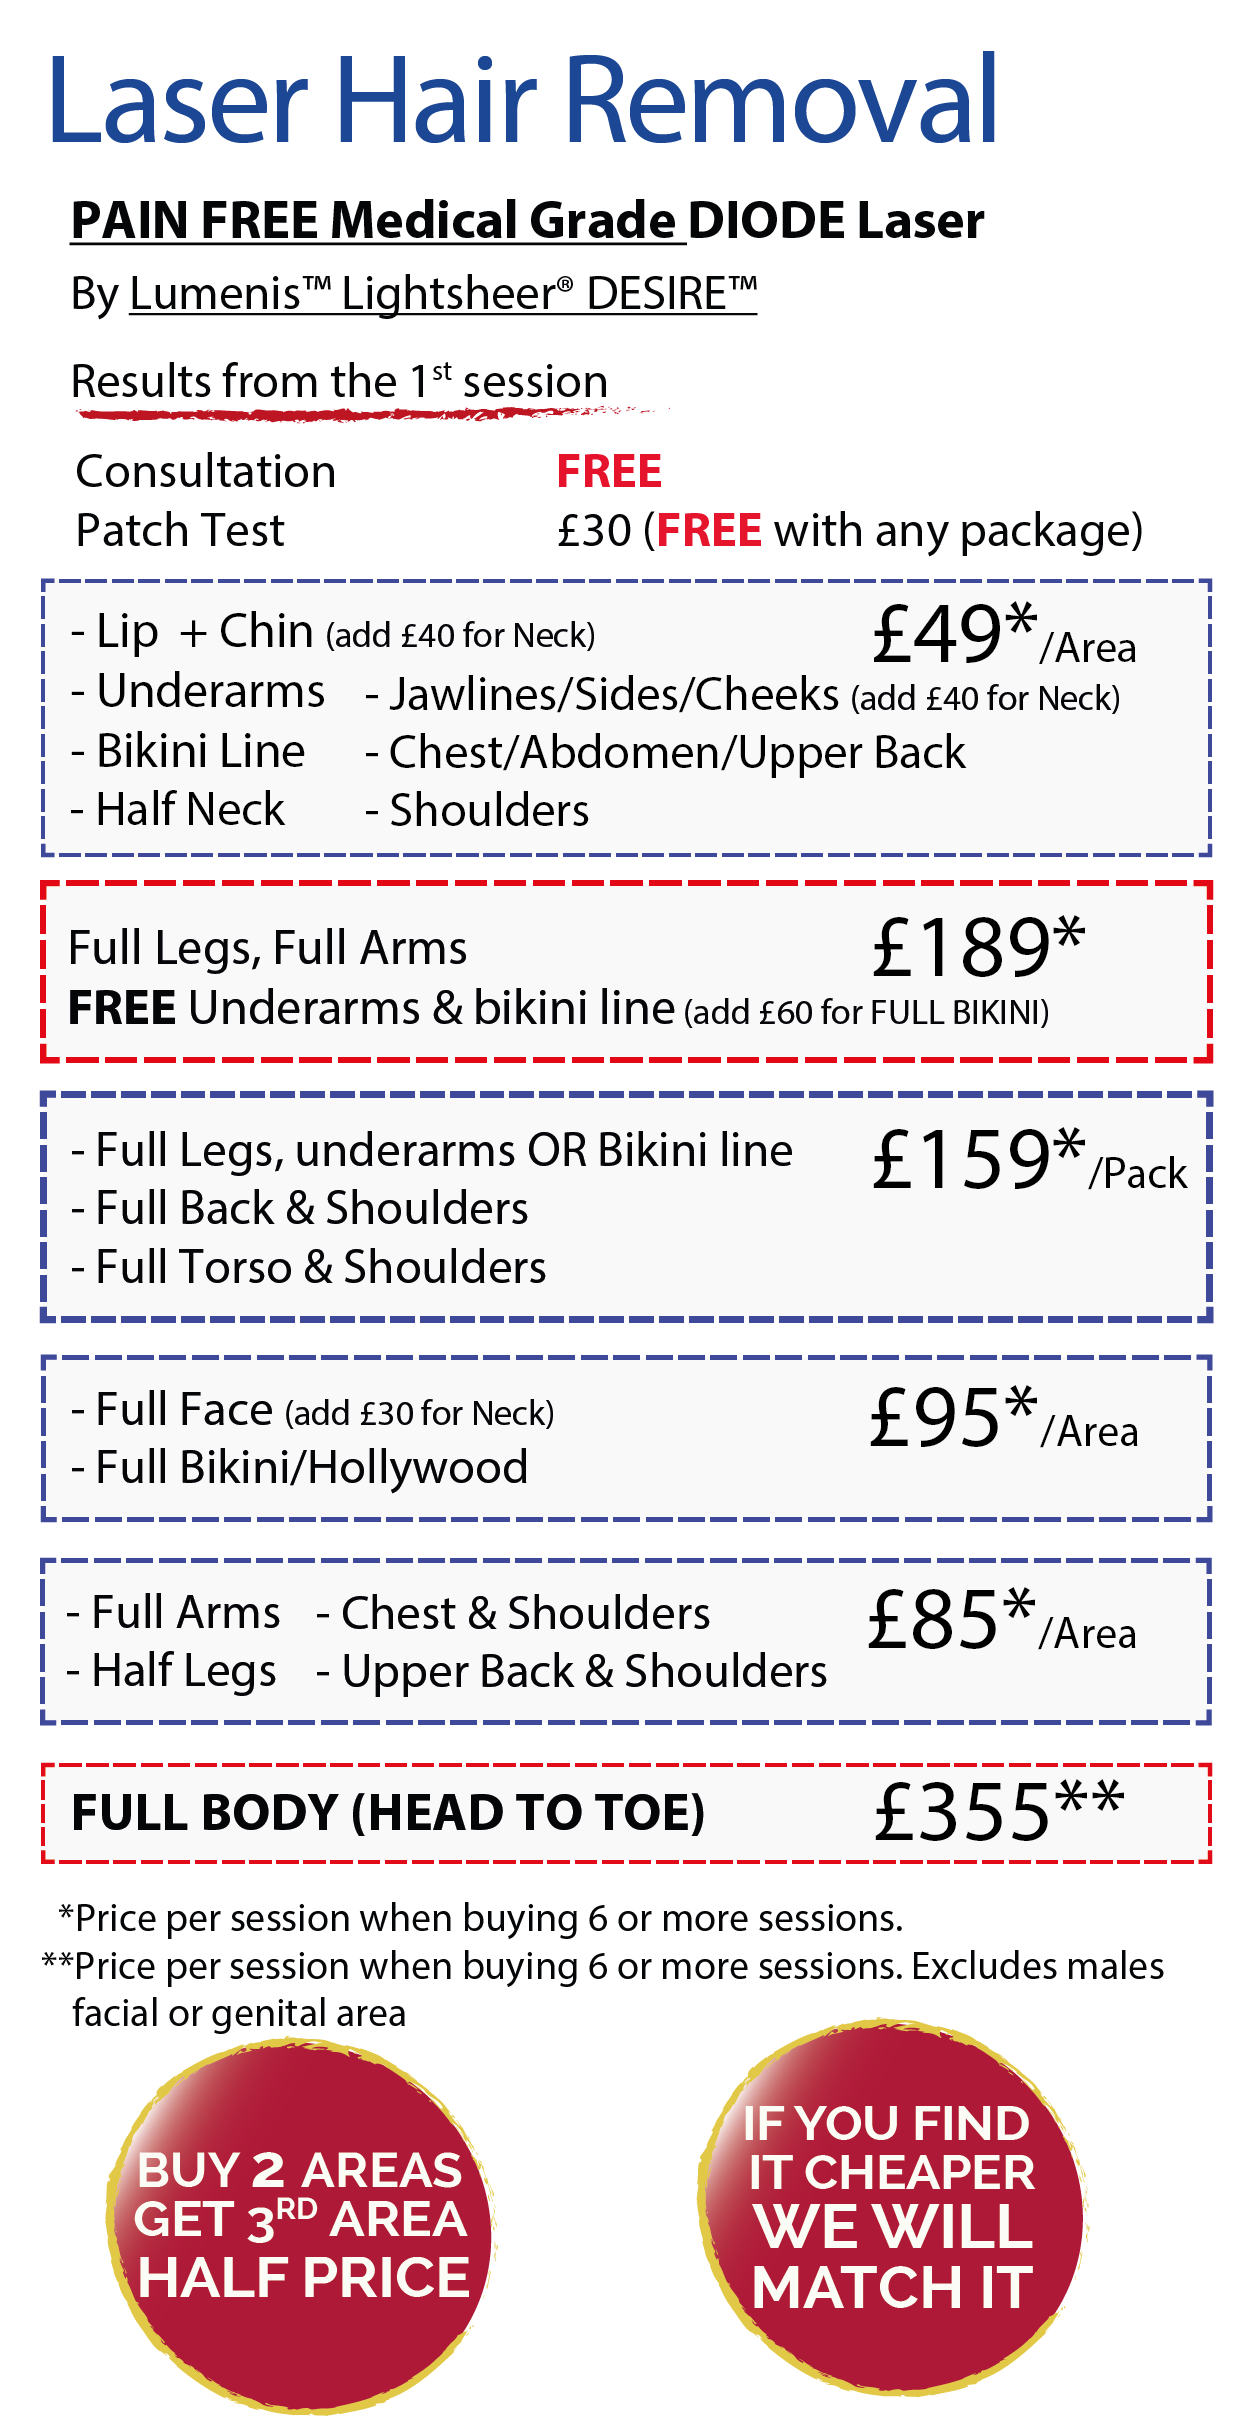 Laser Hair Removal in Leeds Prices - Christmas Offers